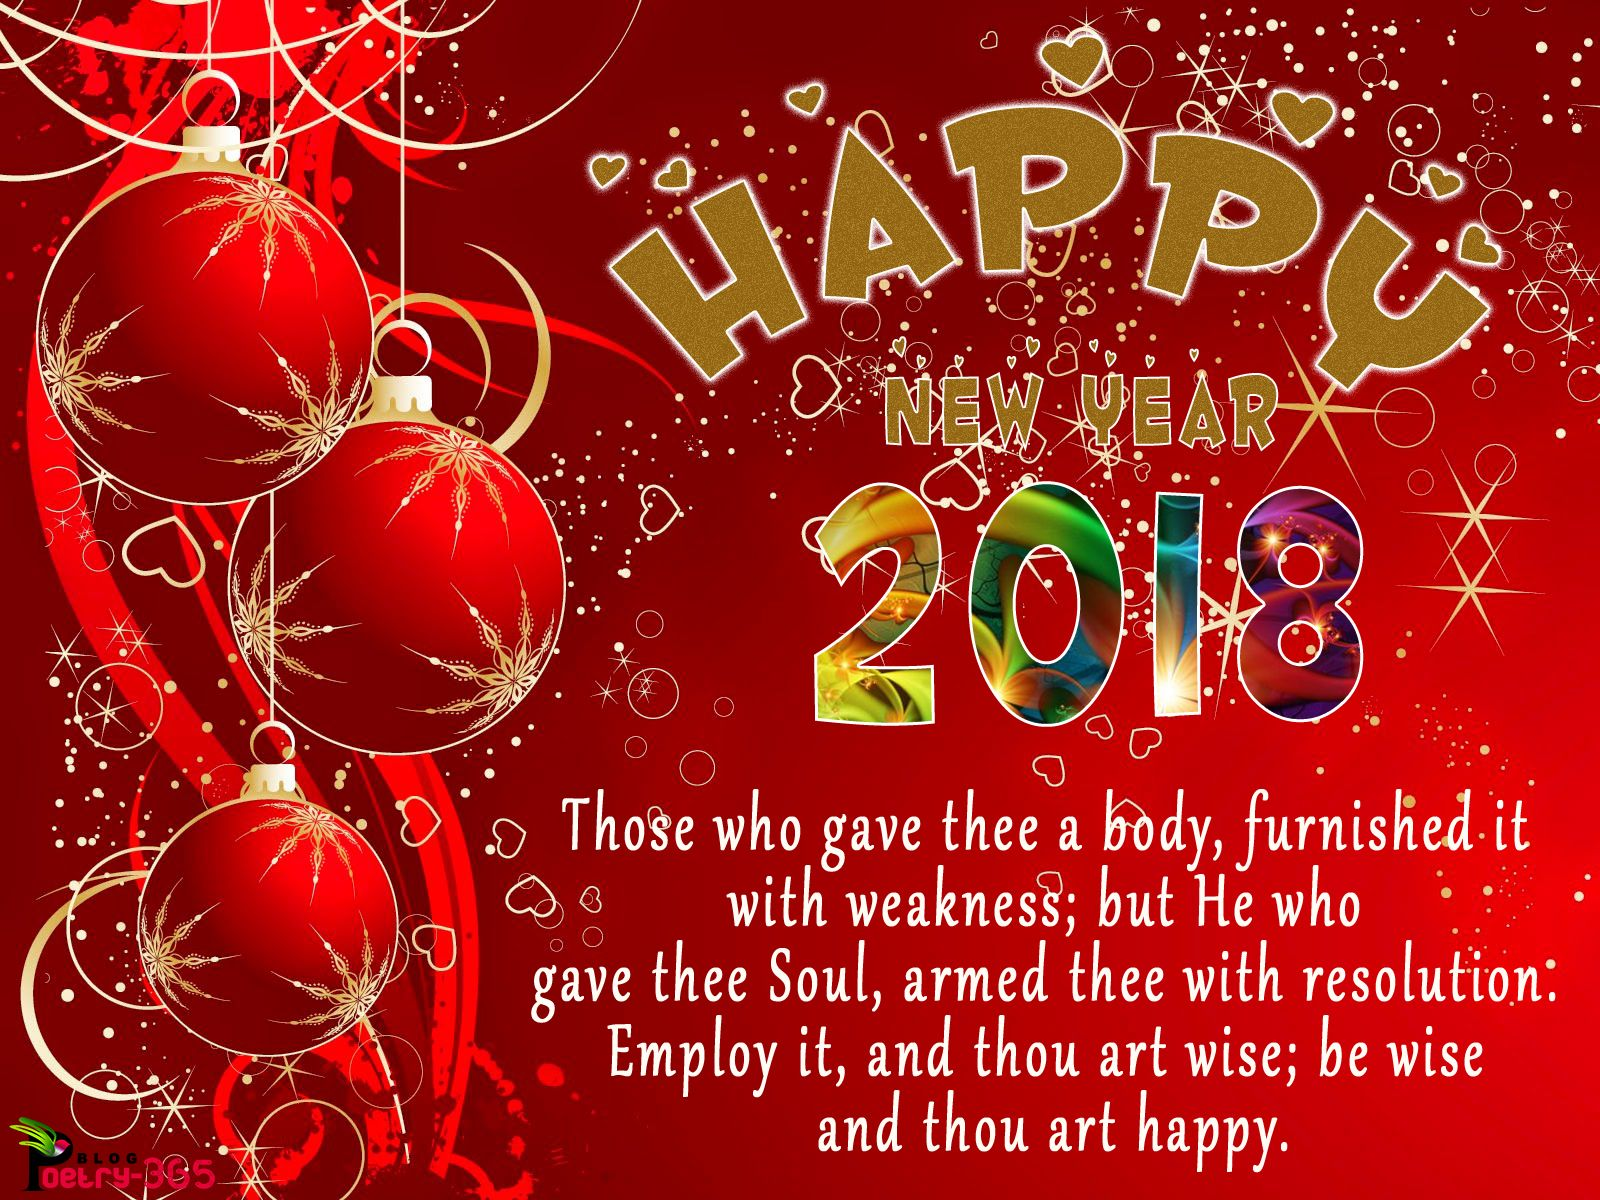 There Are Happy New Year Images In This Post These Image